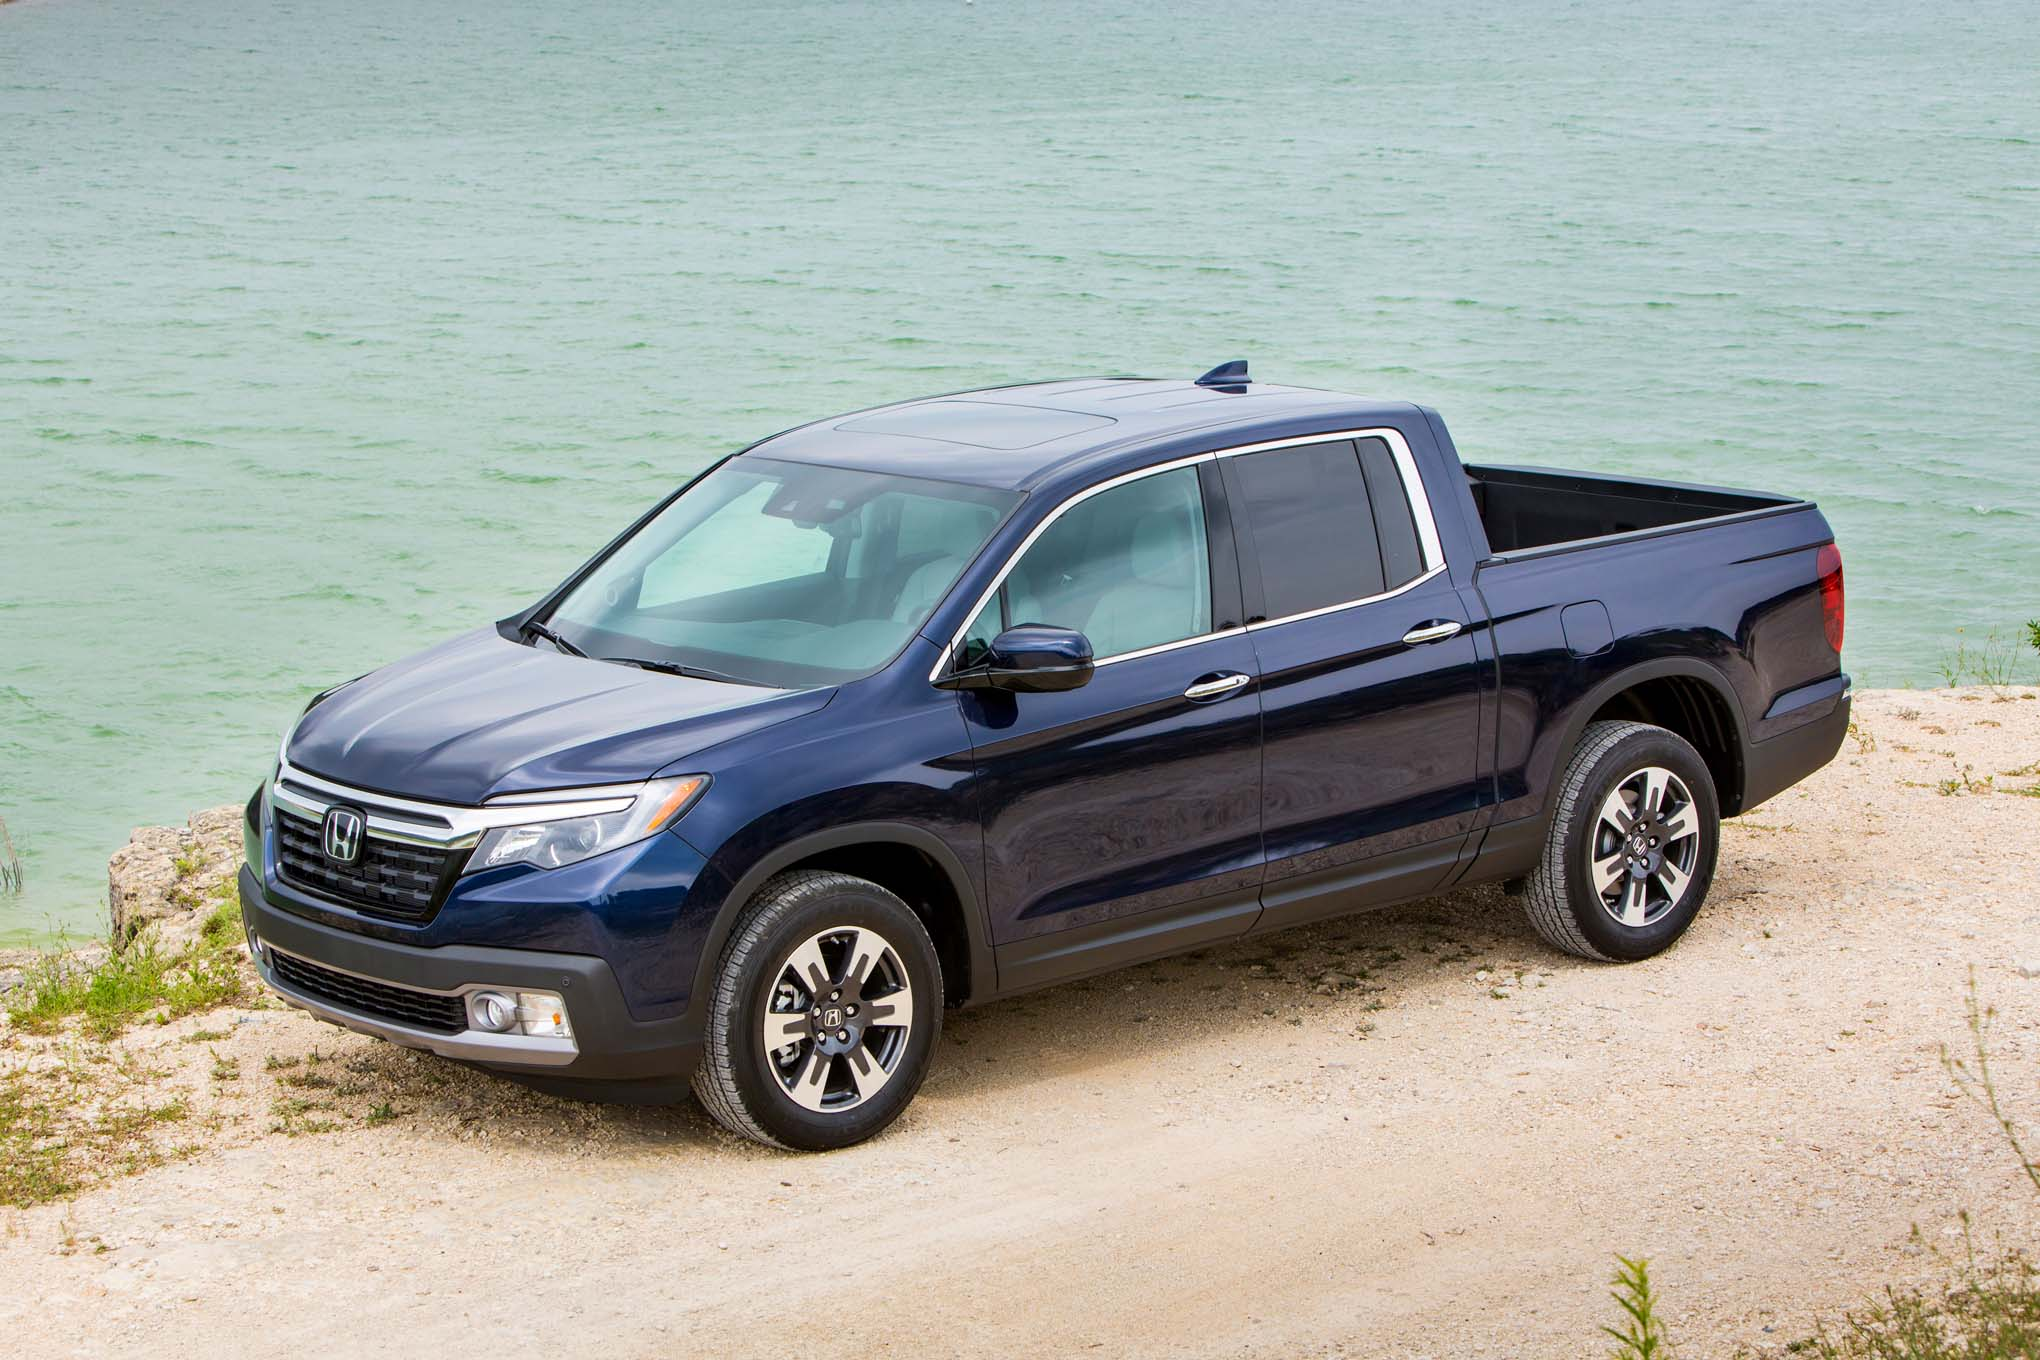 medium resolution of video honda drops toolbox into bed of ridgeline to prove a subtle point also 2017 honda ridgeline blue on single motor circuit diagram